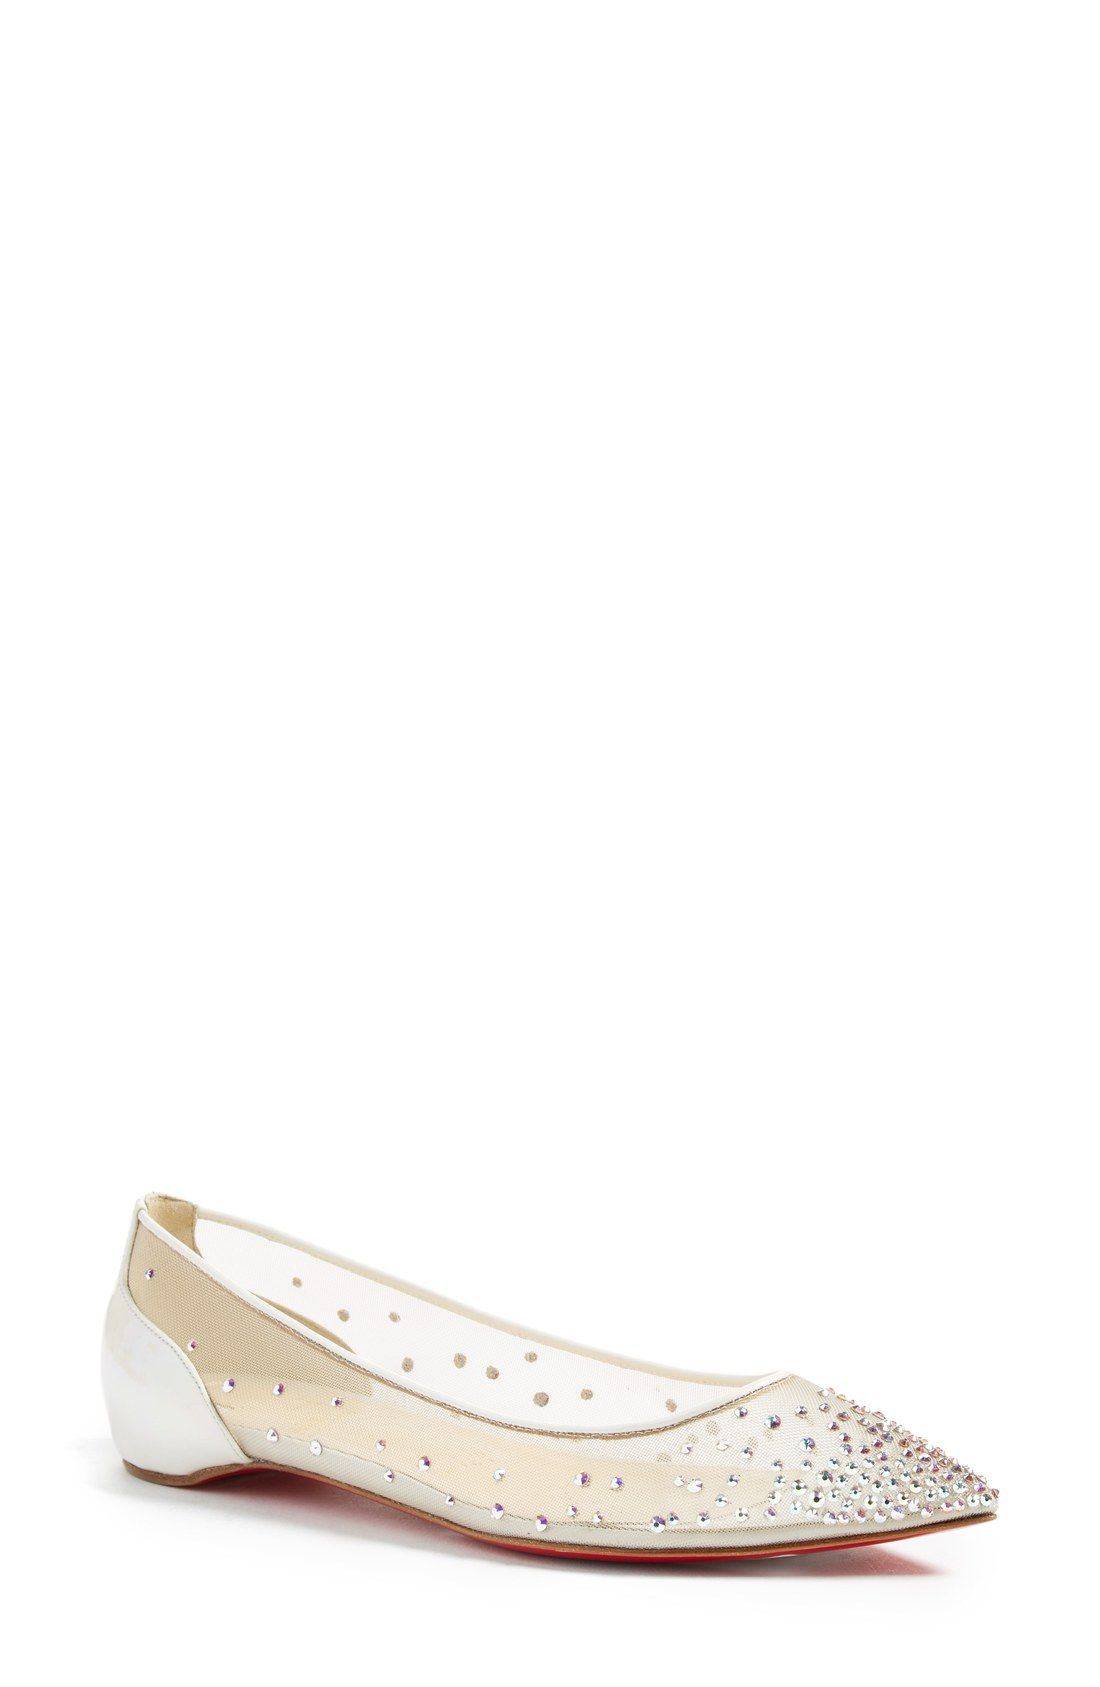 ede8316920d4 Christian Louboutin Follies Strass Pointy Toe Flat